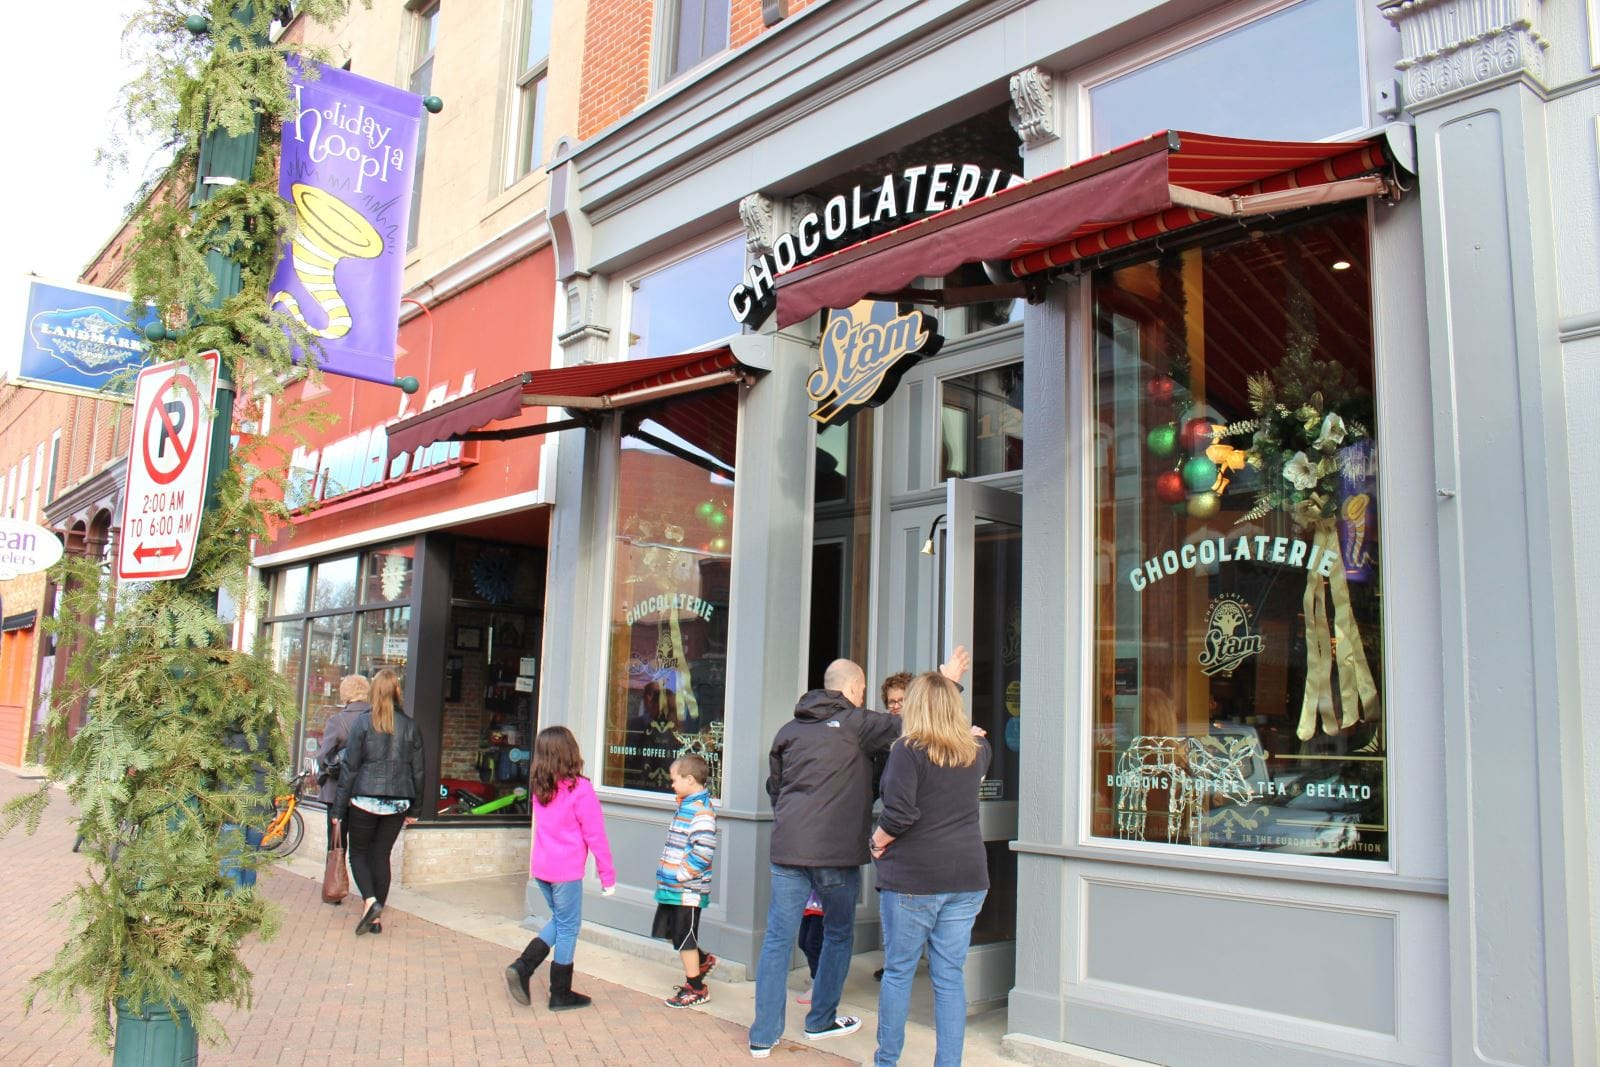 Chocolaterie Stam | downtown Cedar Falls, Iowa | 'Tis the Season for Candy and Treats! Blog Post